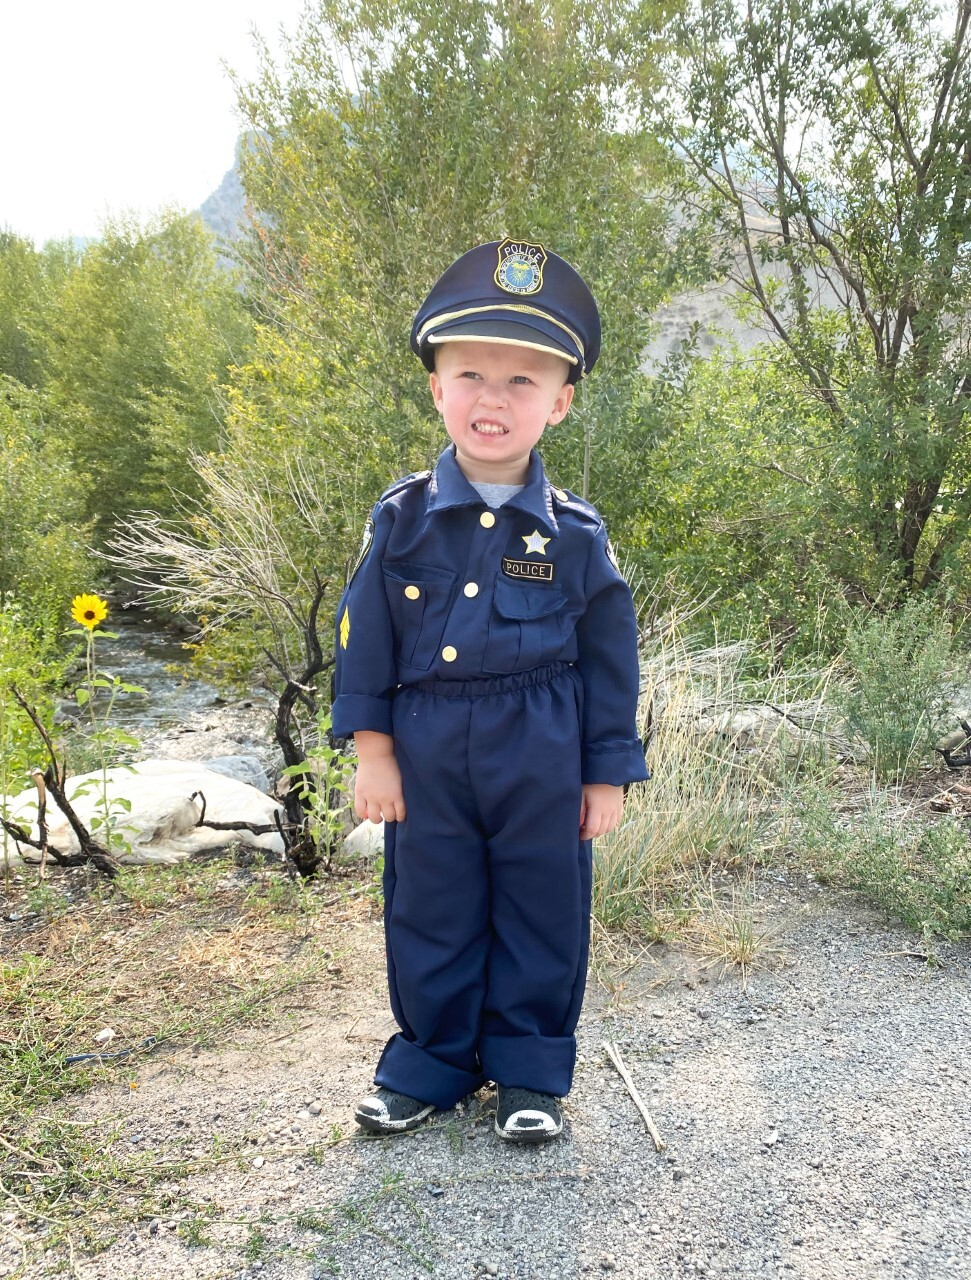 Boy dressed as police office